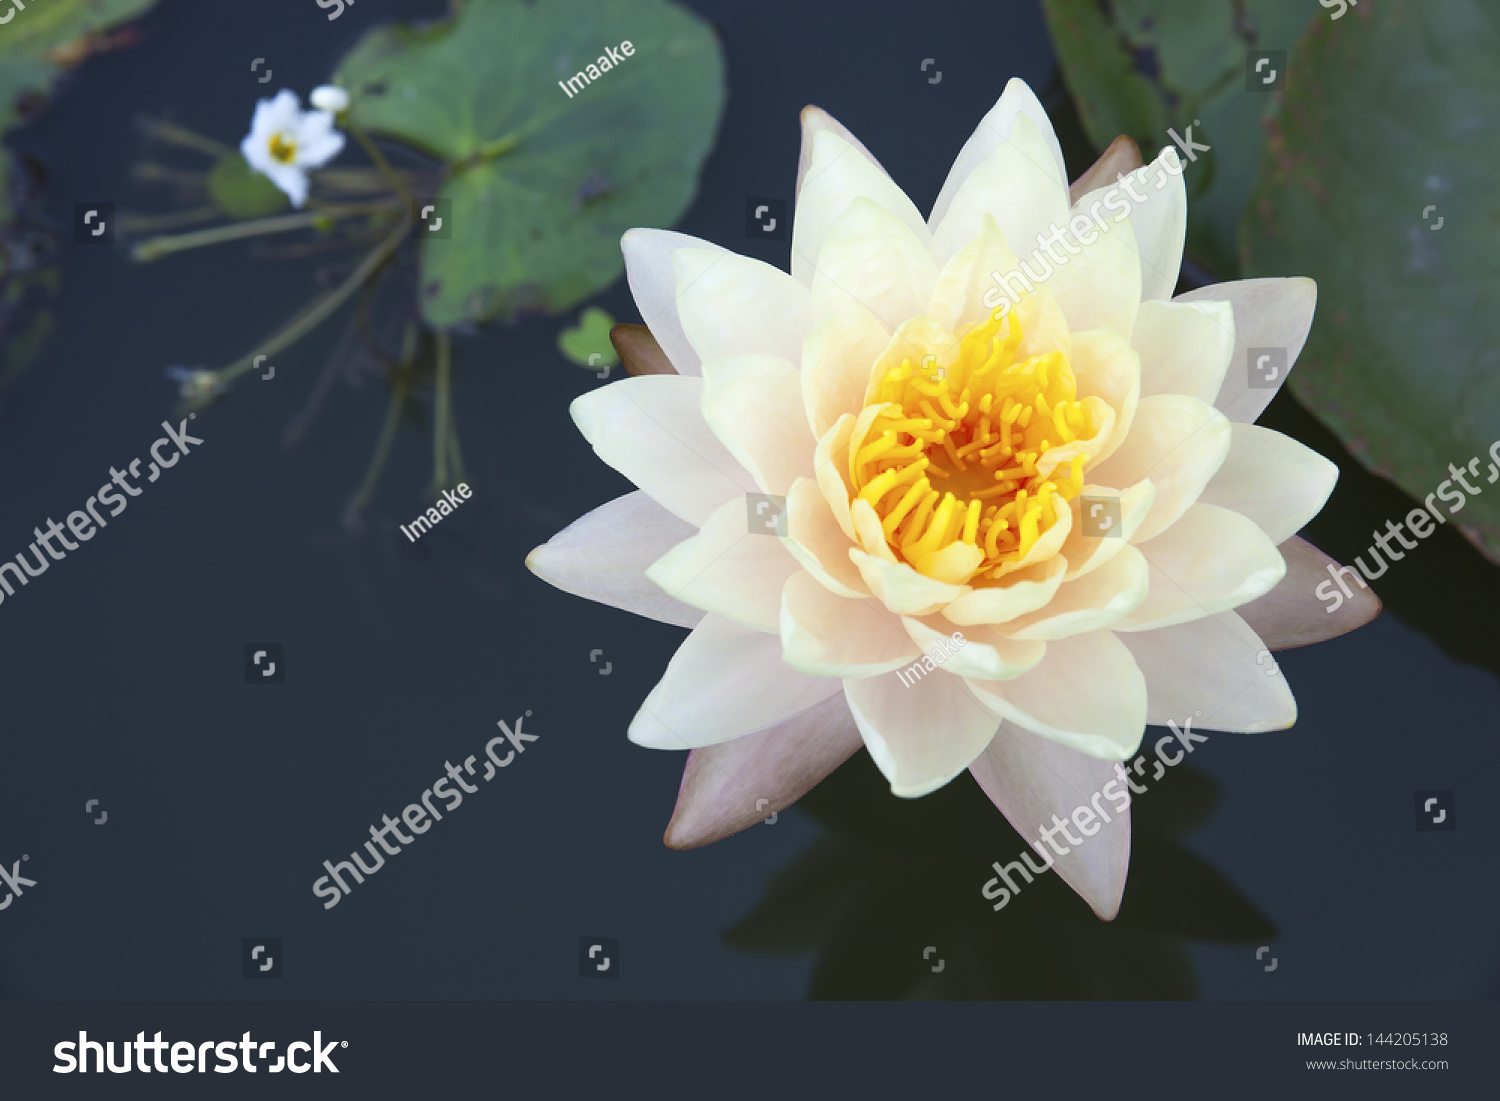 Blossom Lotus Flower Pond Focus On Stock Photo Edit Now 144205138